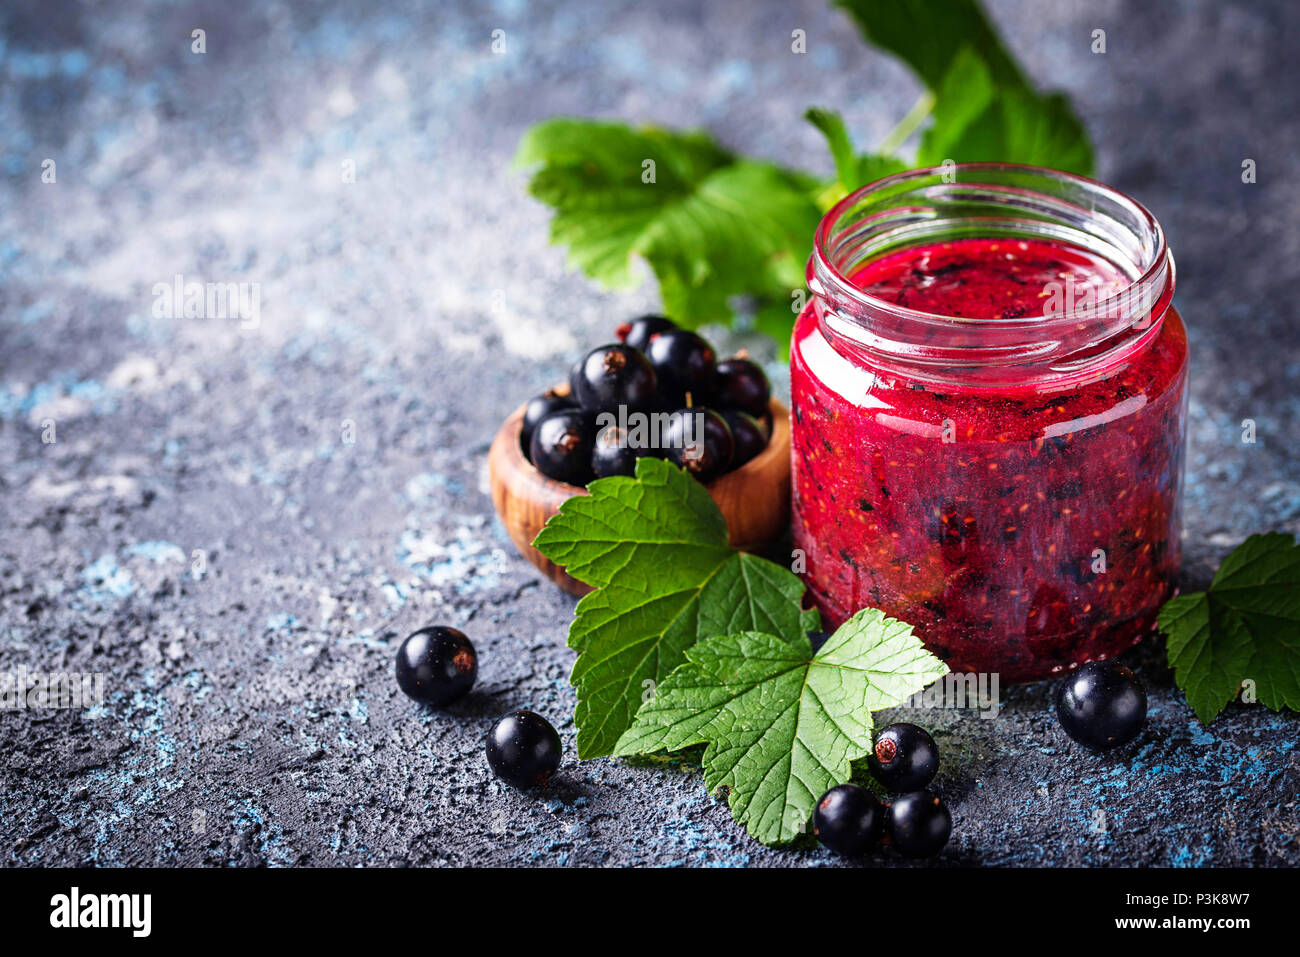 Black currant jam in jar - Stock Image